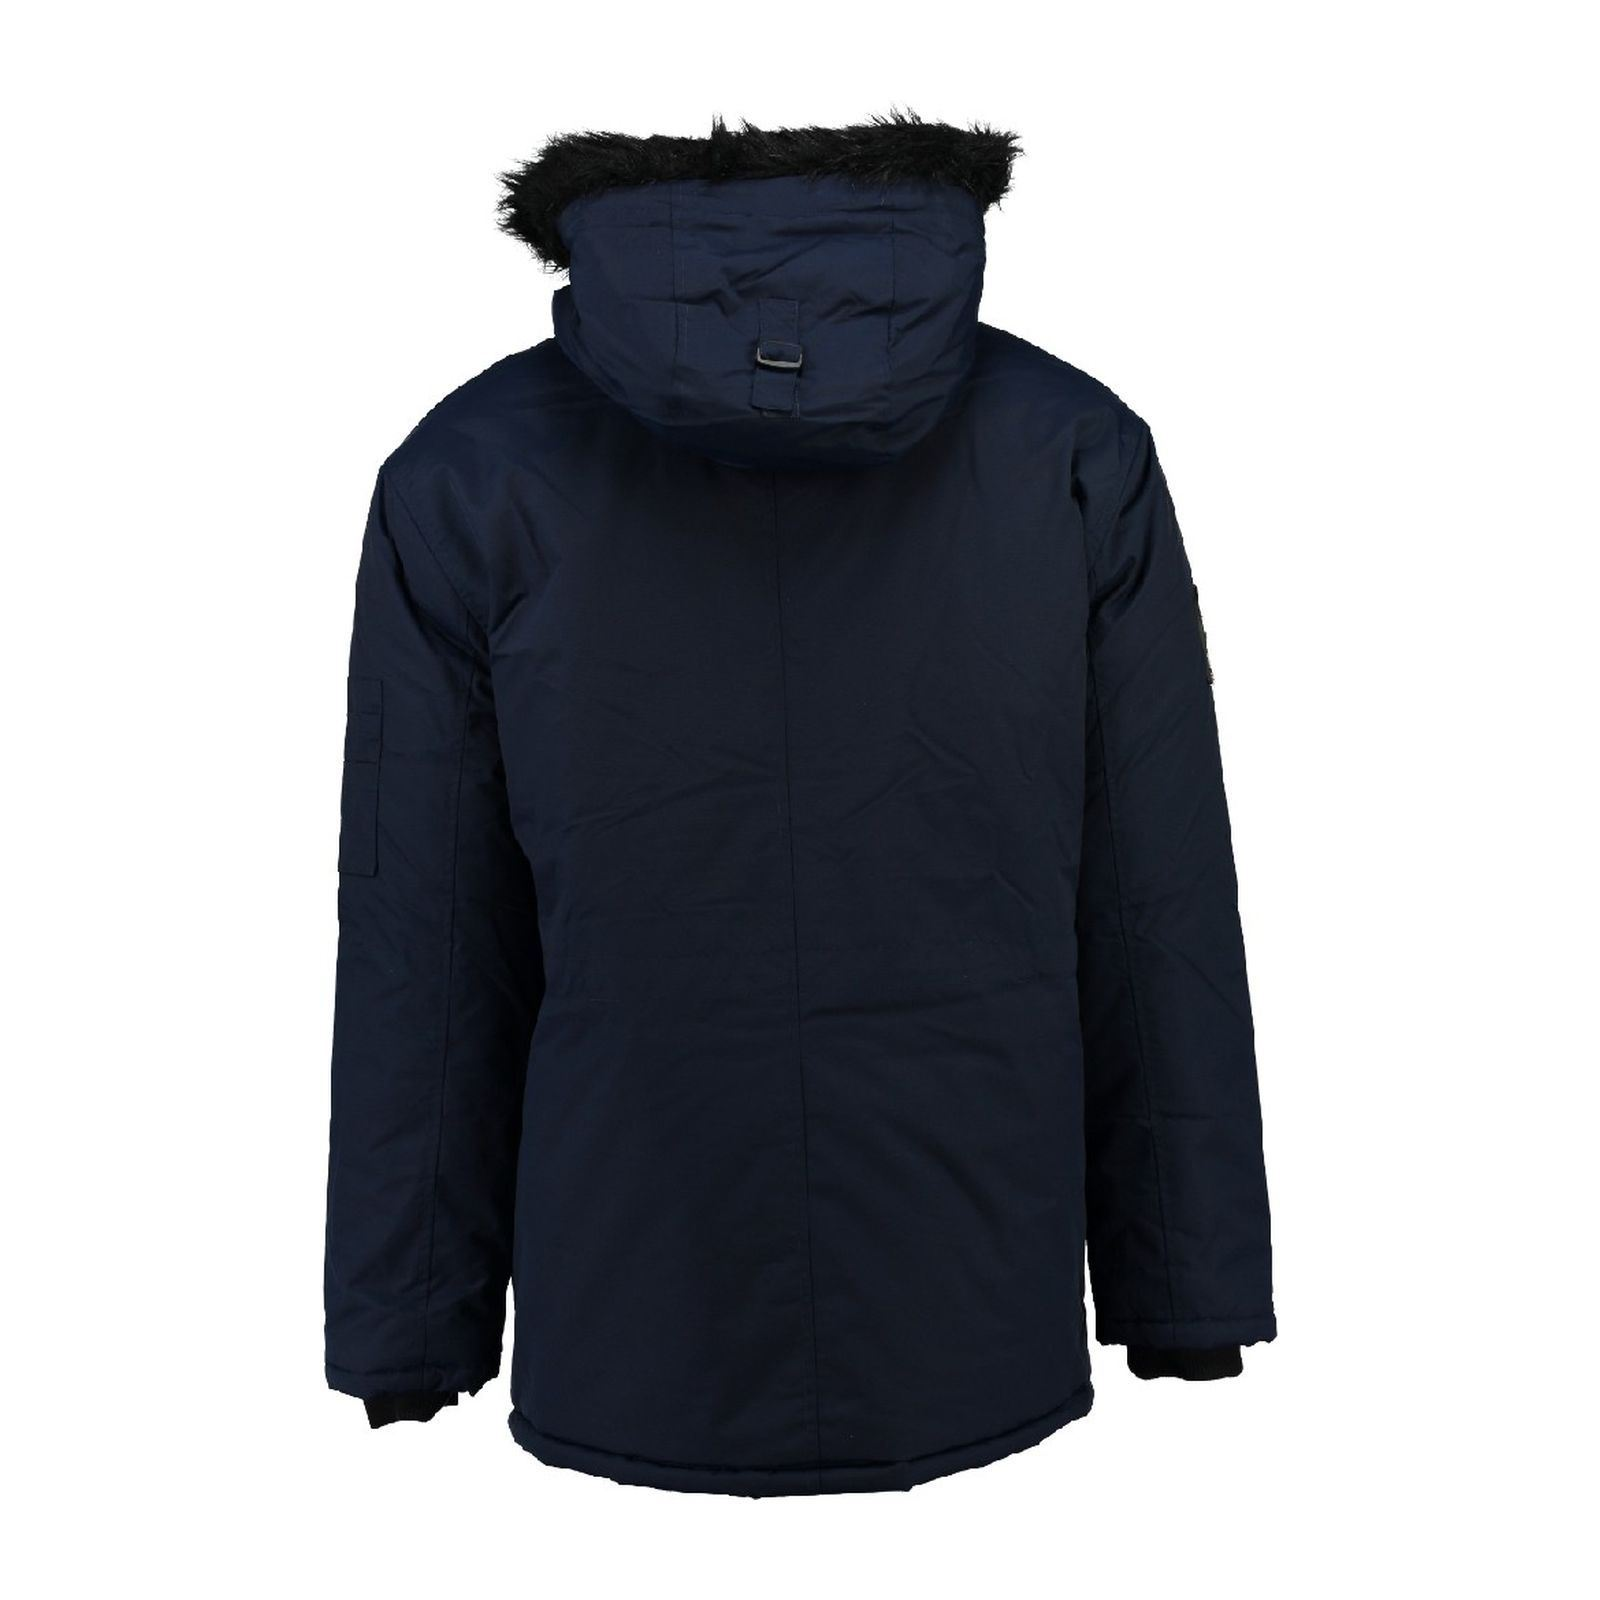 Bleu Geographical Marine Parka Norway Brandalley 8qwgRq10